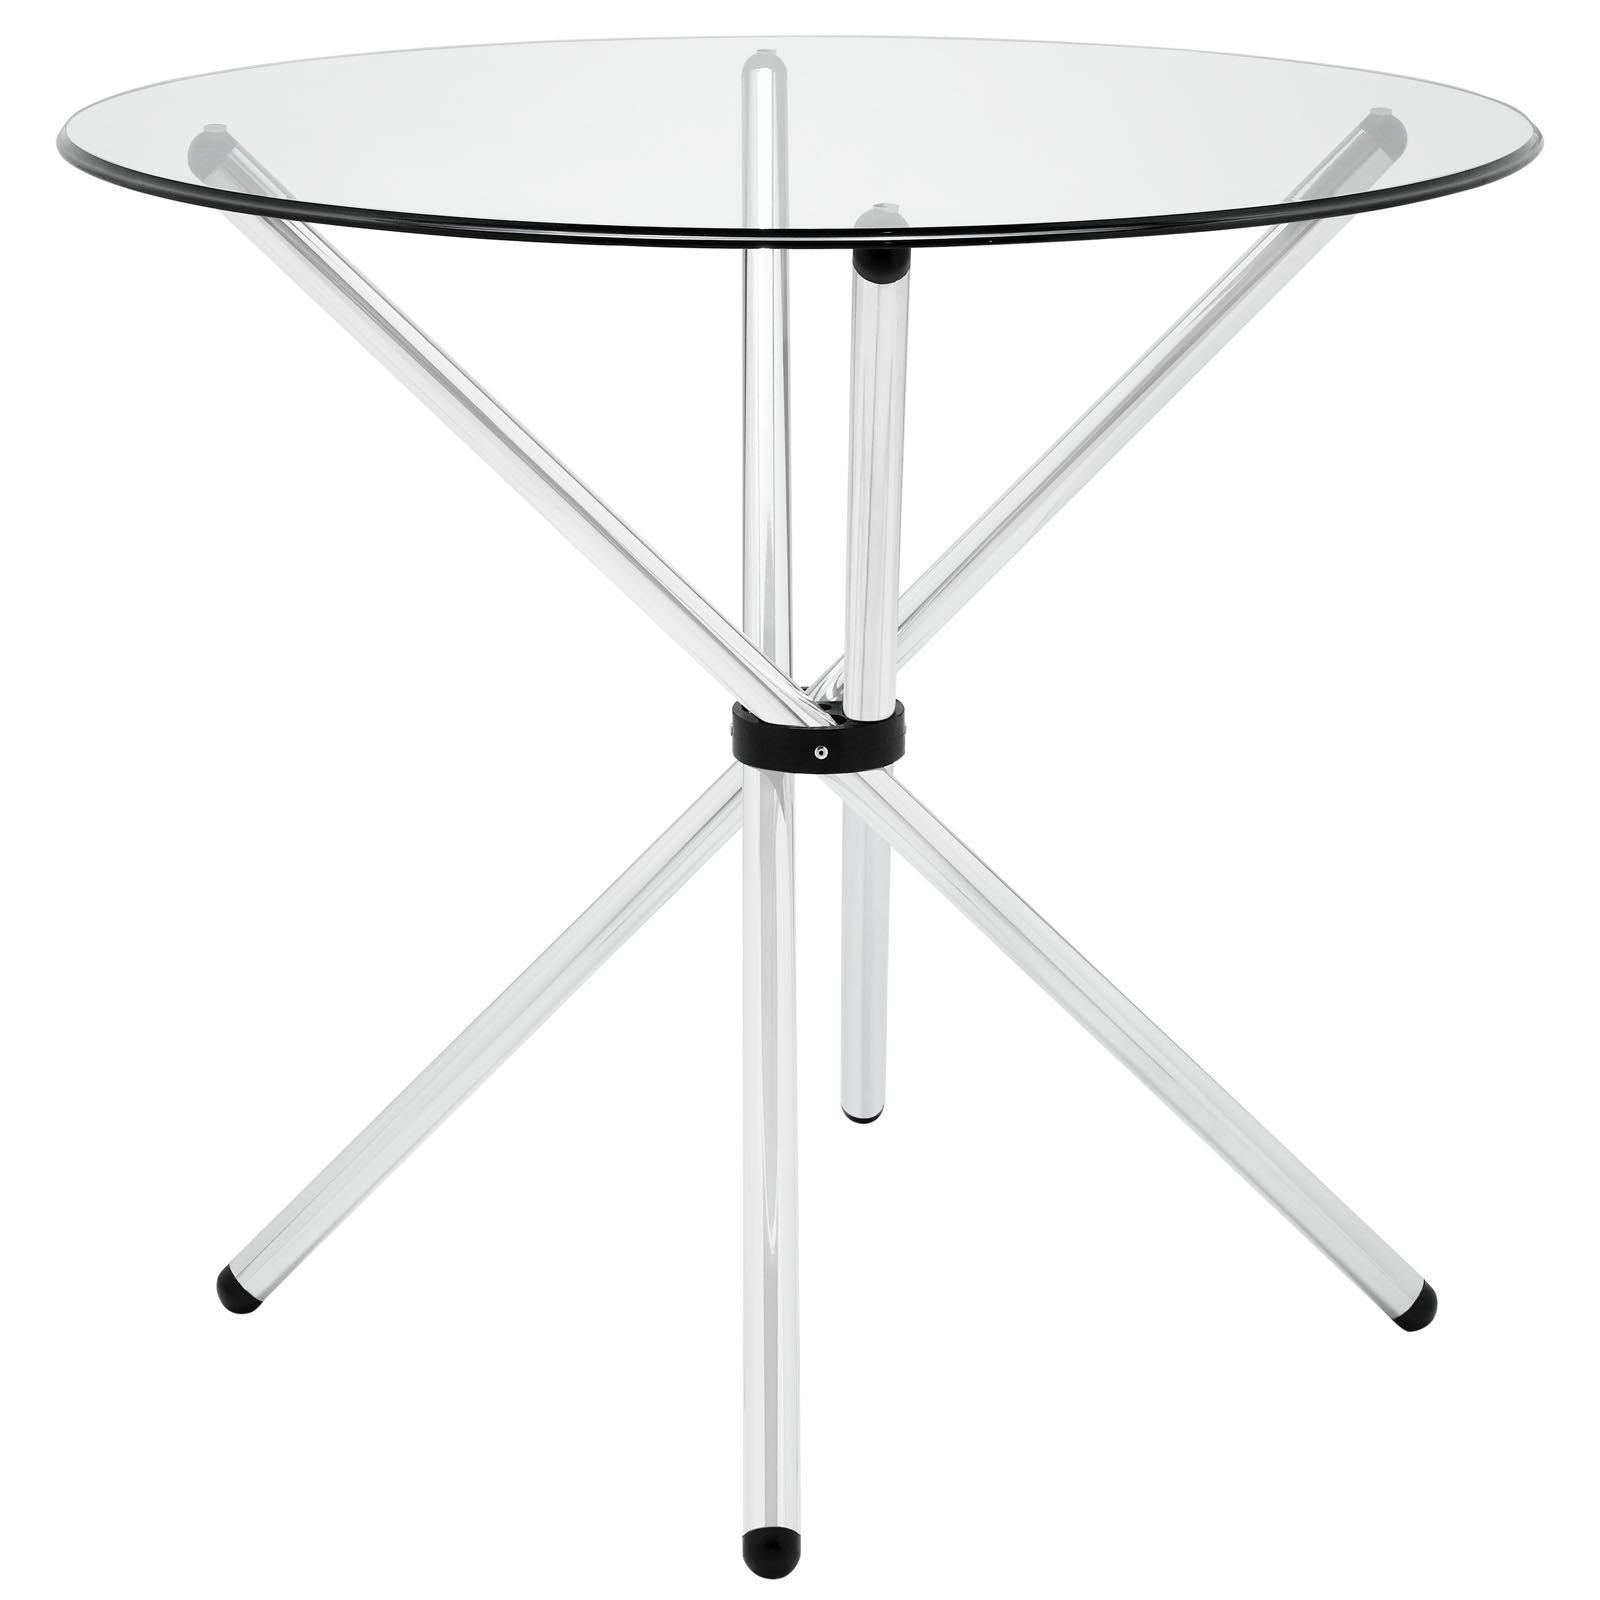 Modway Baton Contemporary Modern Tempered Glass Top Round Dining Table in Clear